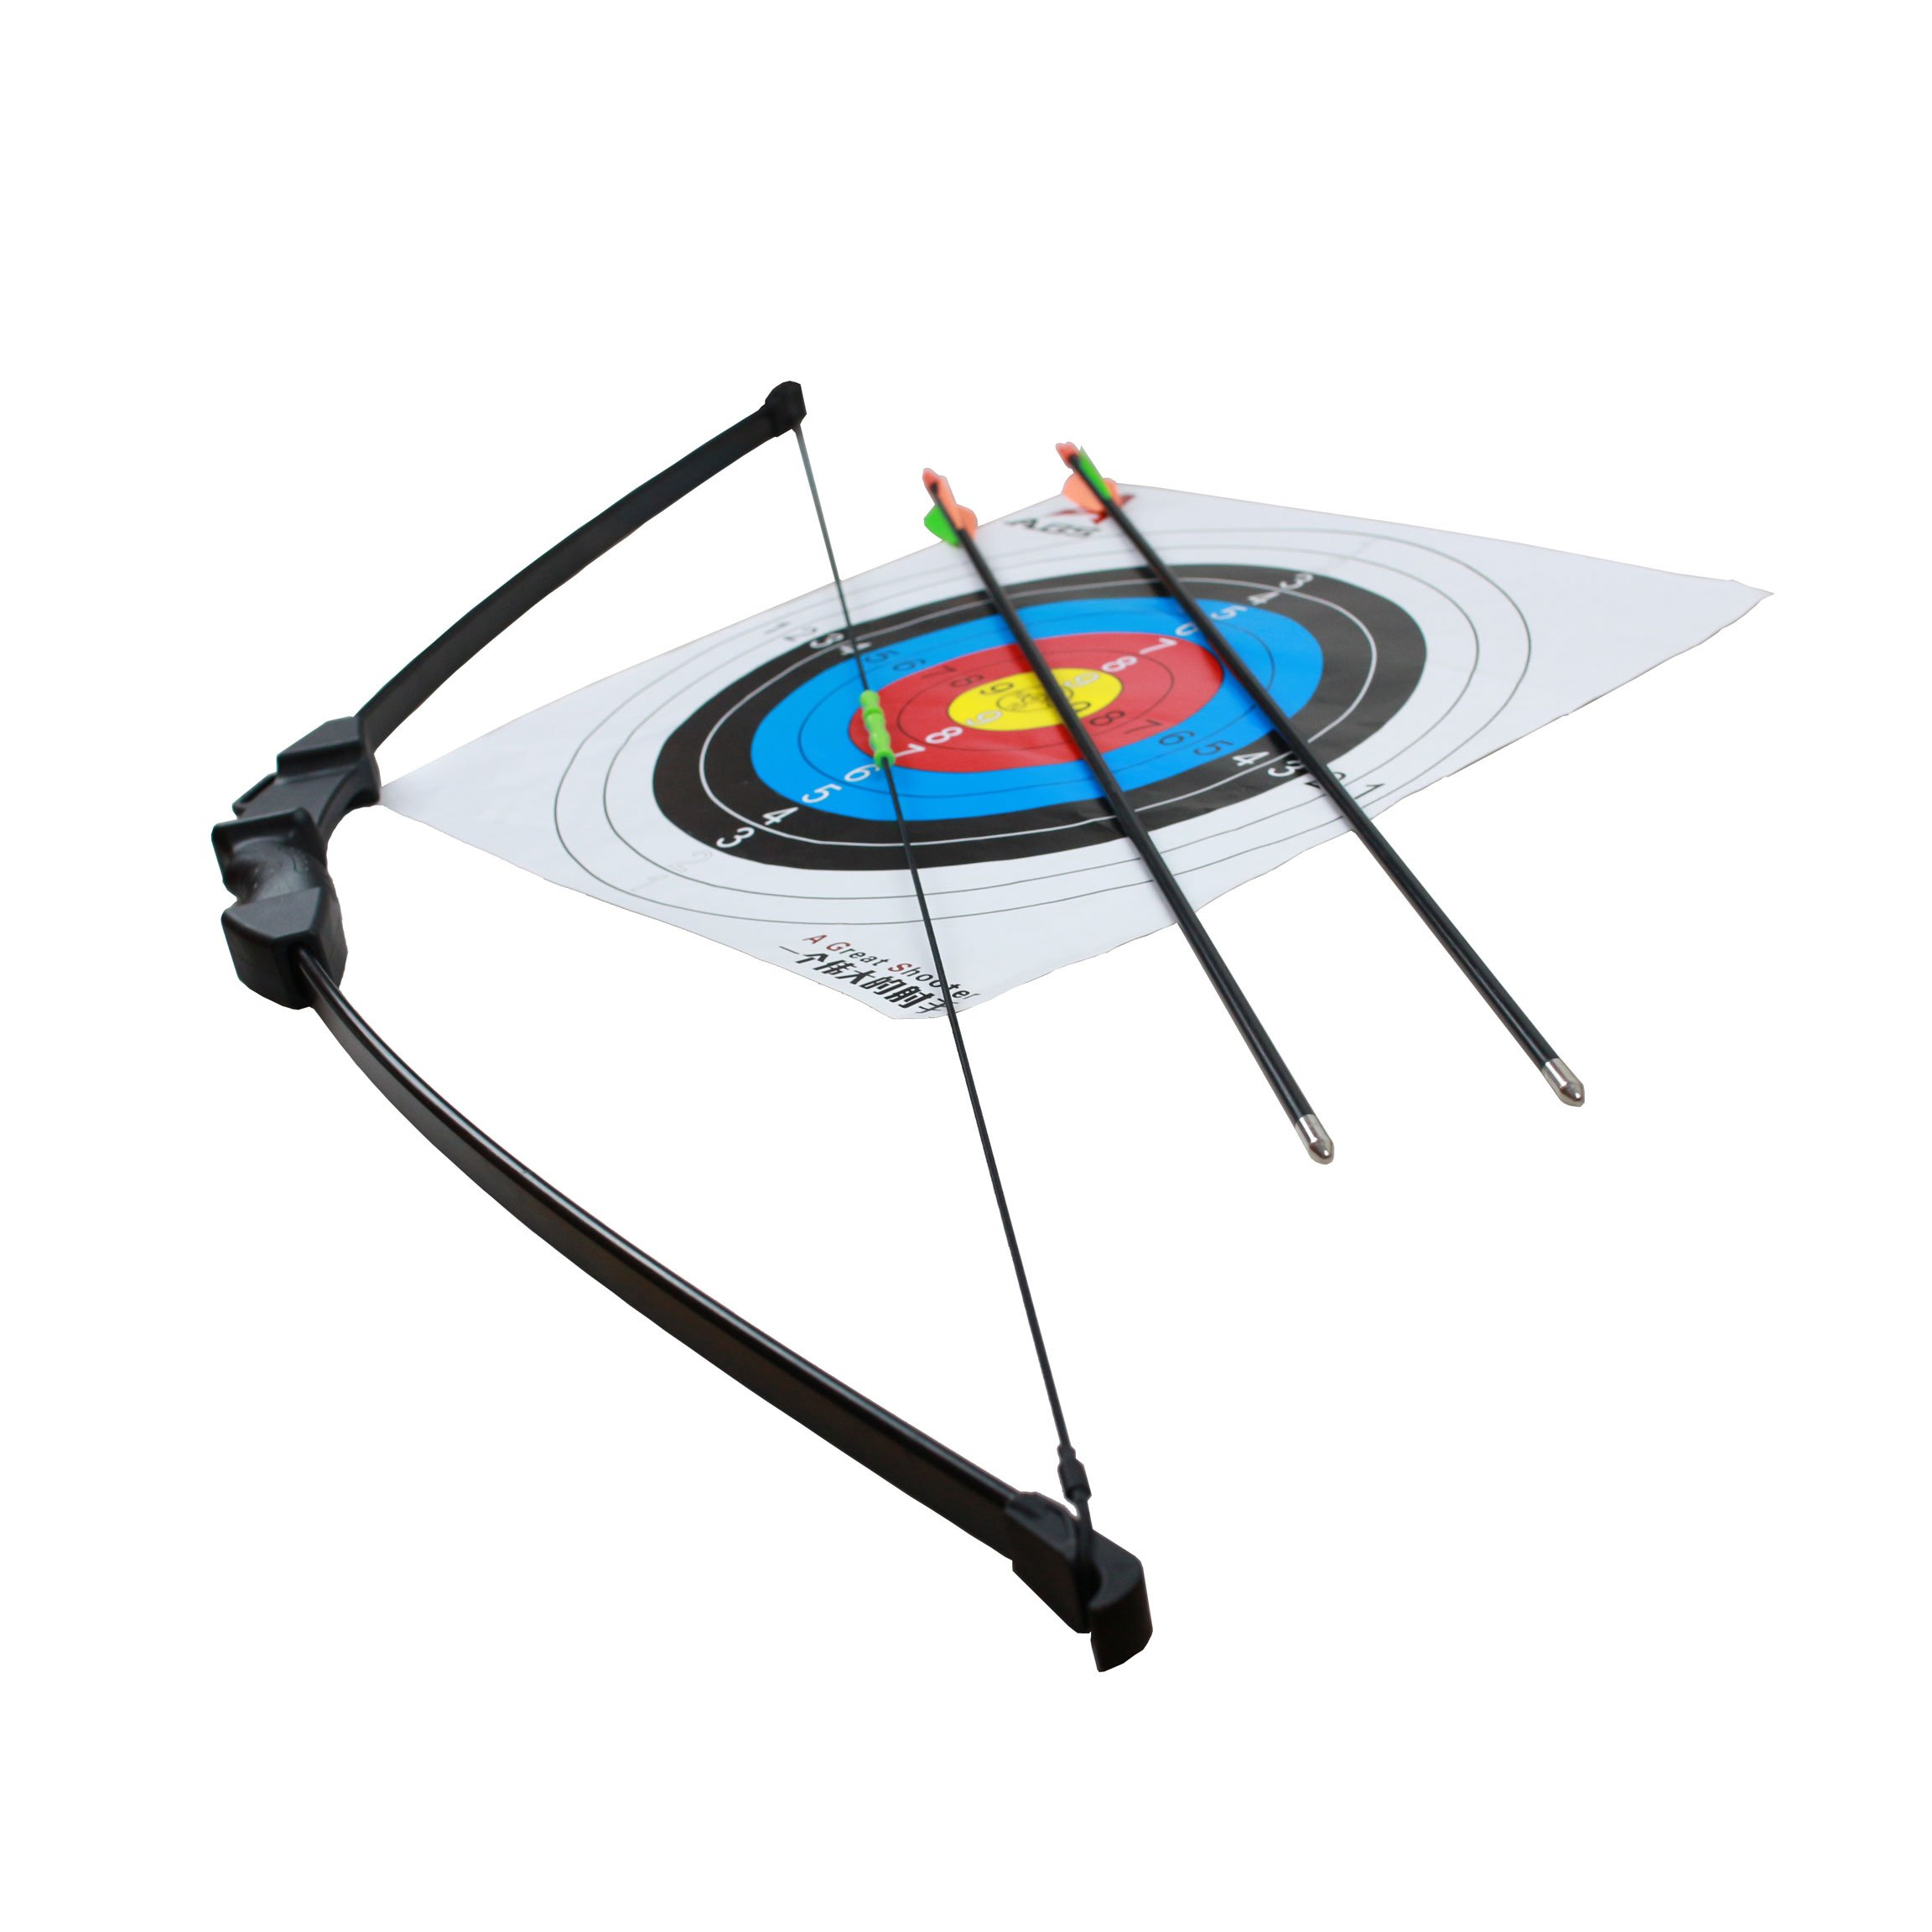 Geelife 45'' Basic Archery Bow and Arrow Set Start Recurve Bow Outdoor Sports Game Hunting Toy Gift Bow Kit Set with 2 Arrows and Target Sheet 18 Lb for Teens by Geelife (Image #2)